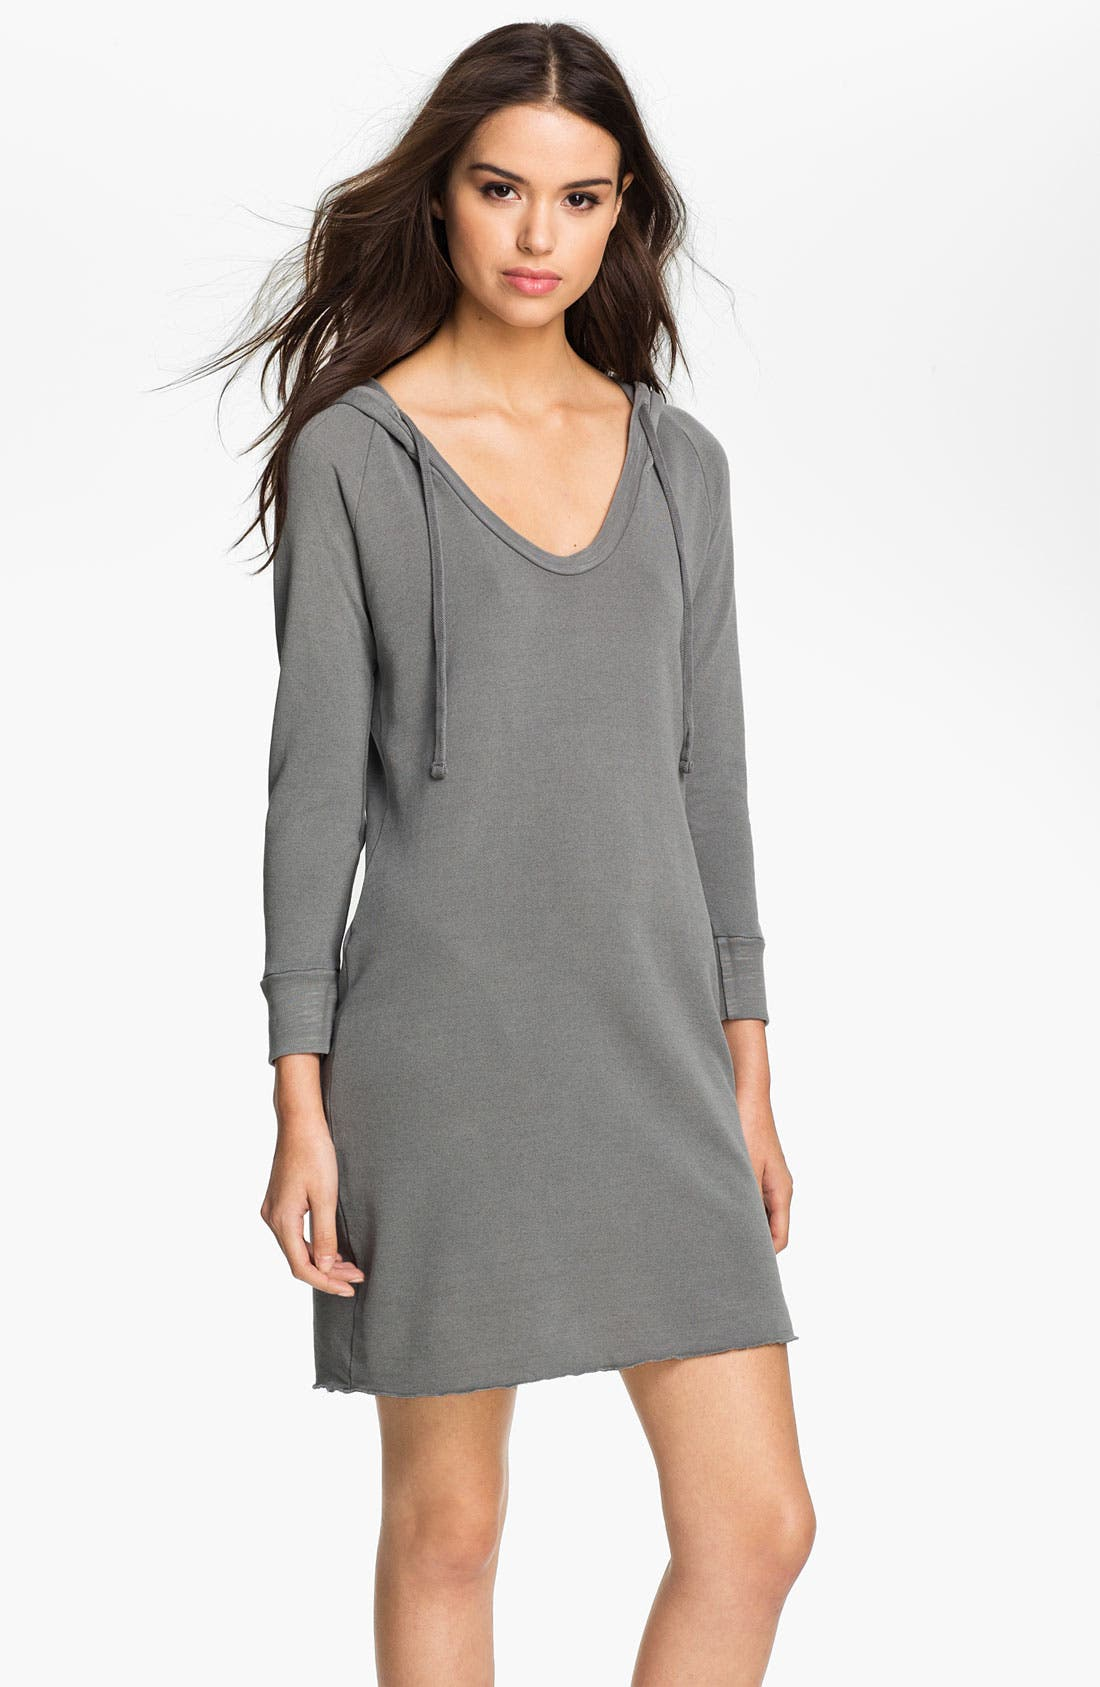 Main Image - James Perse Hooded Sweatshirt Dress